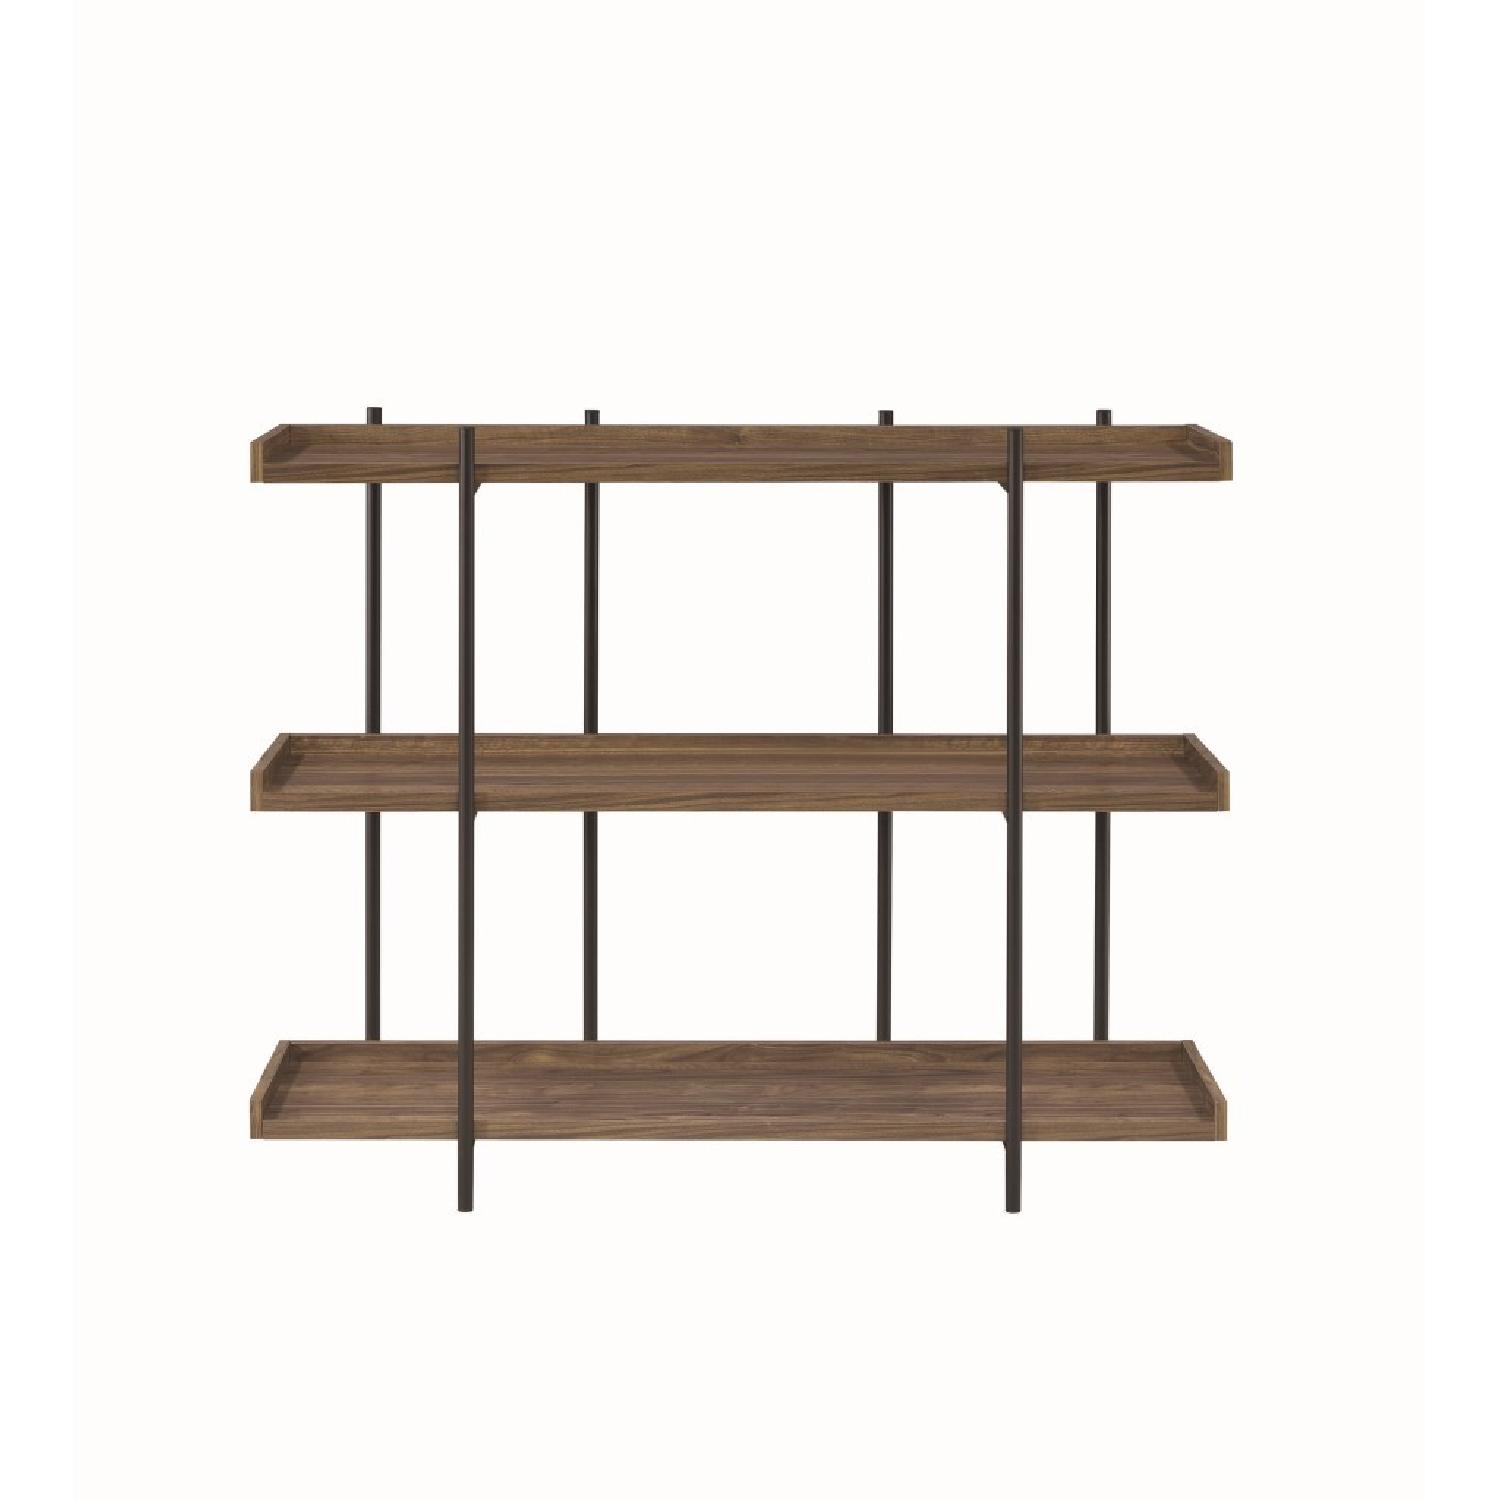 Industrial Style 3-Shelves Bookcase in Aged Walnut Finish - image-4